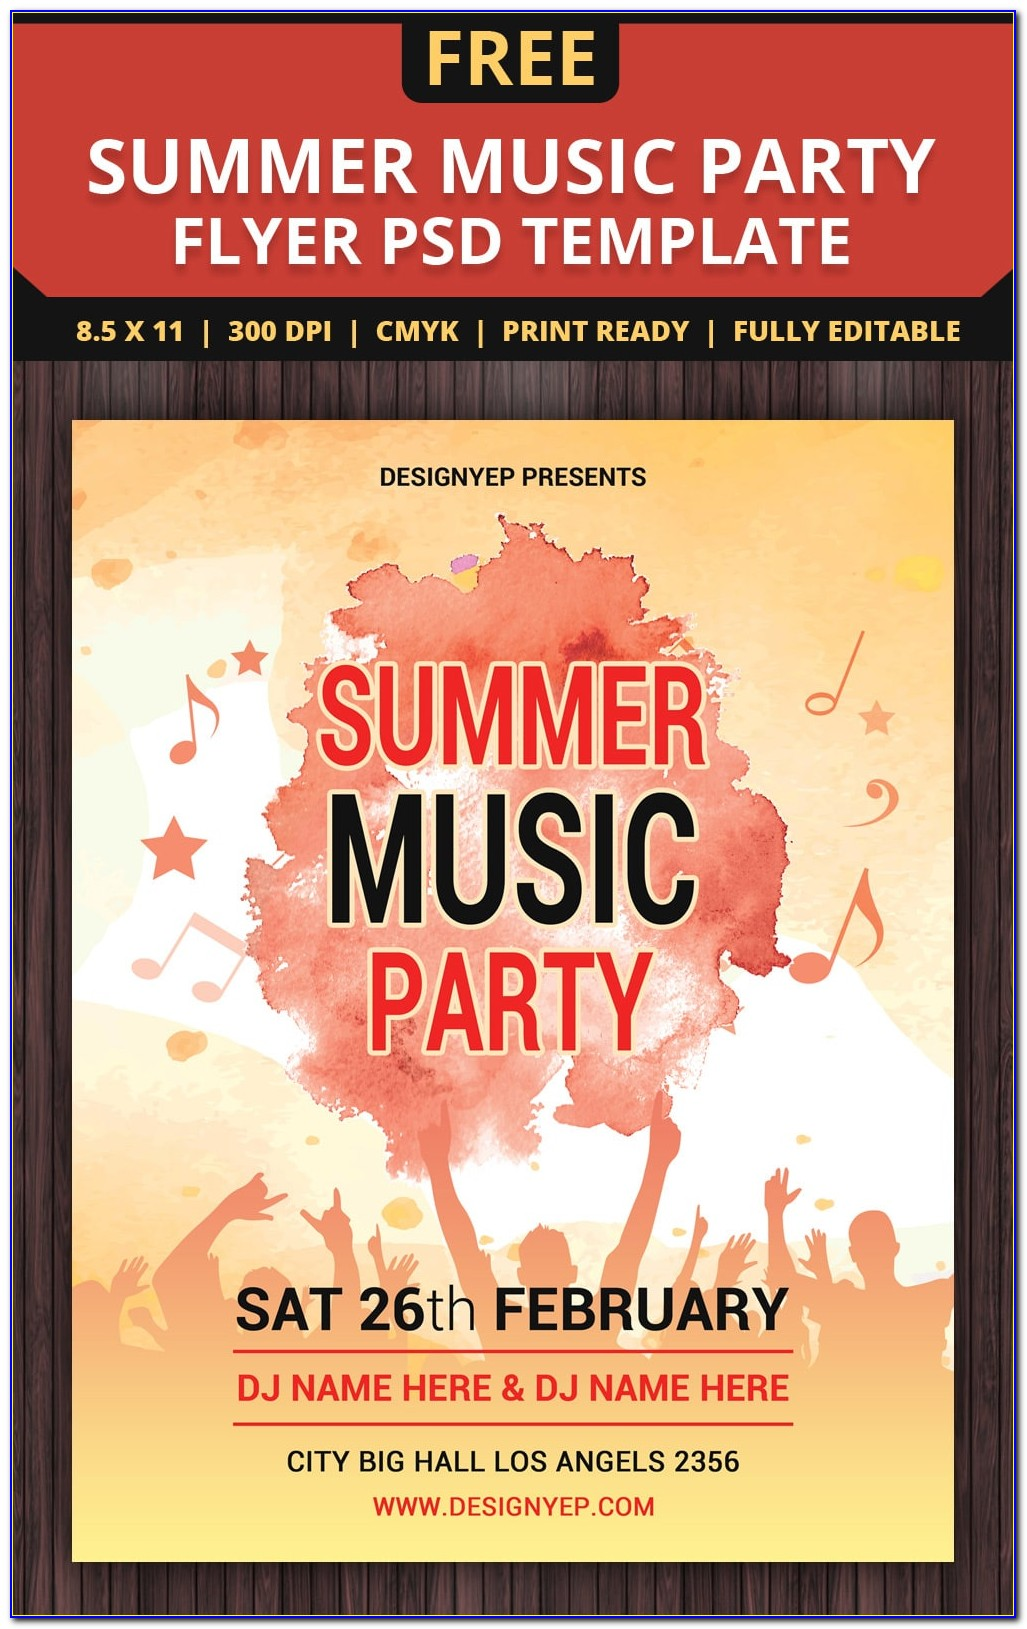 Party Flyer Templates Free Microsoft Word